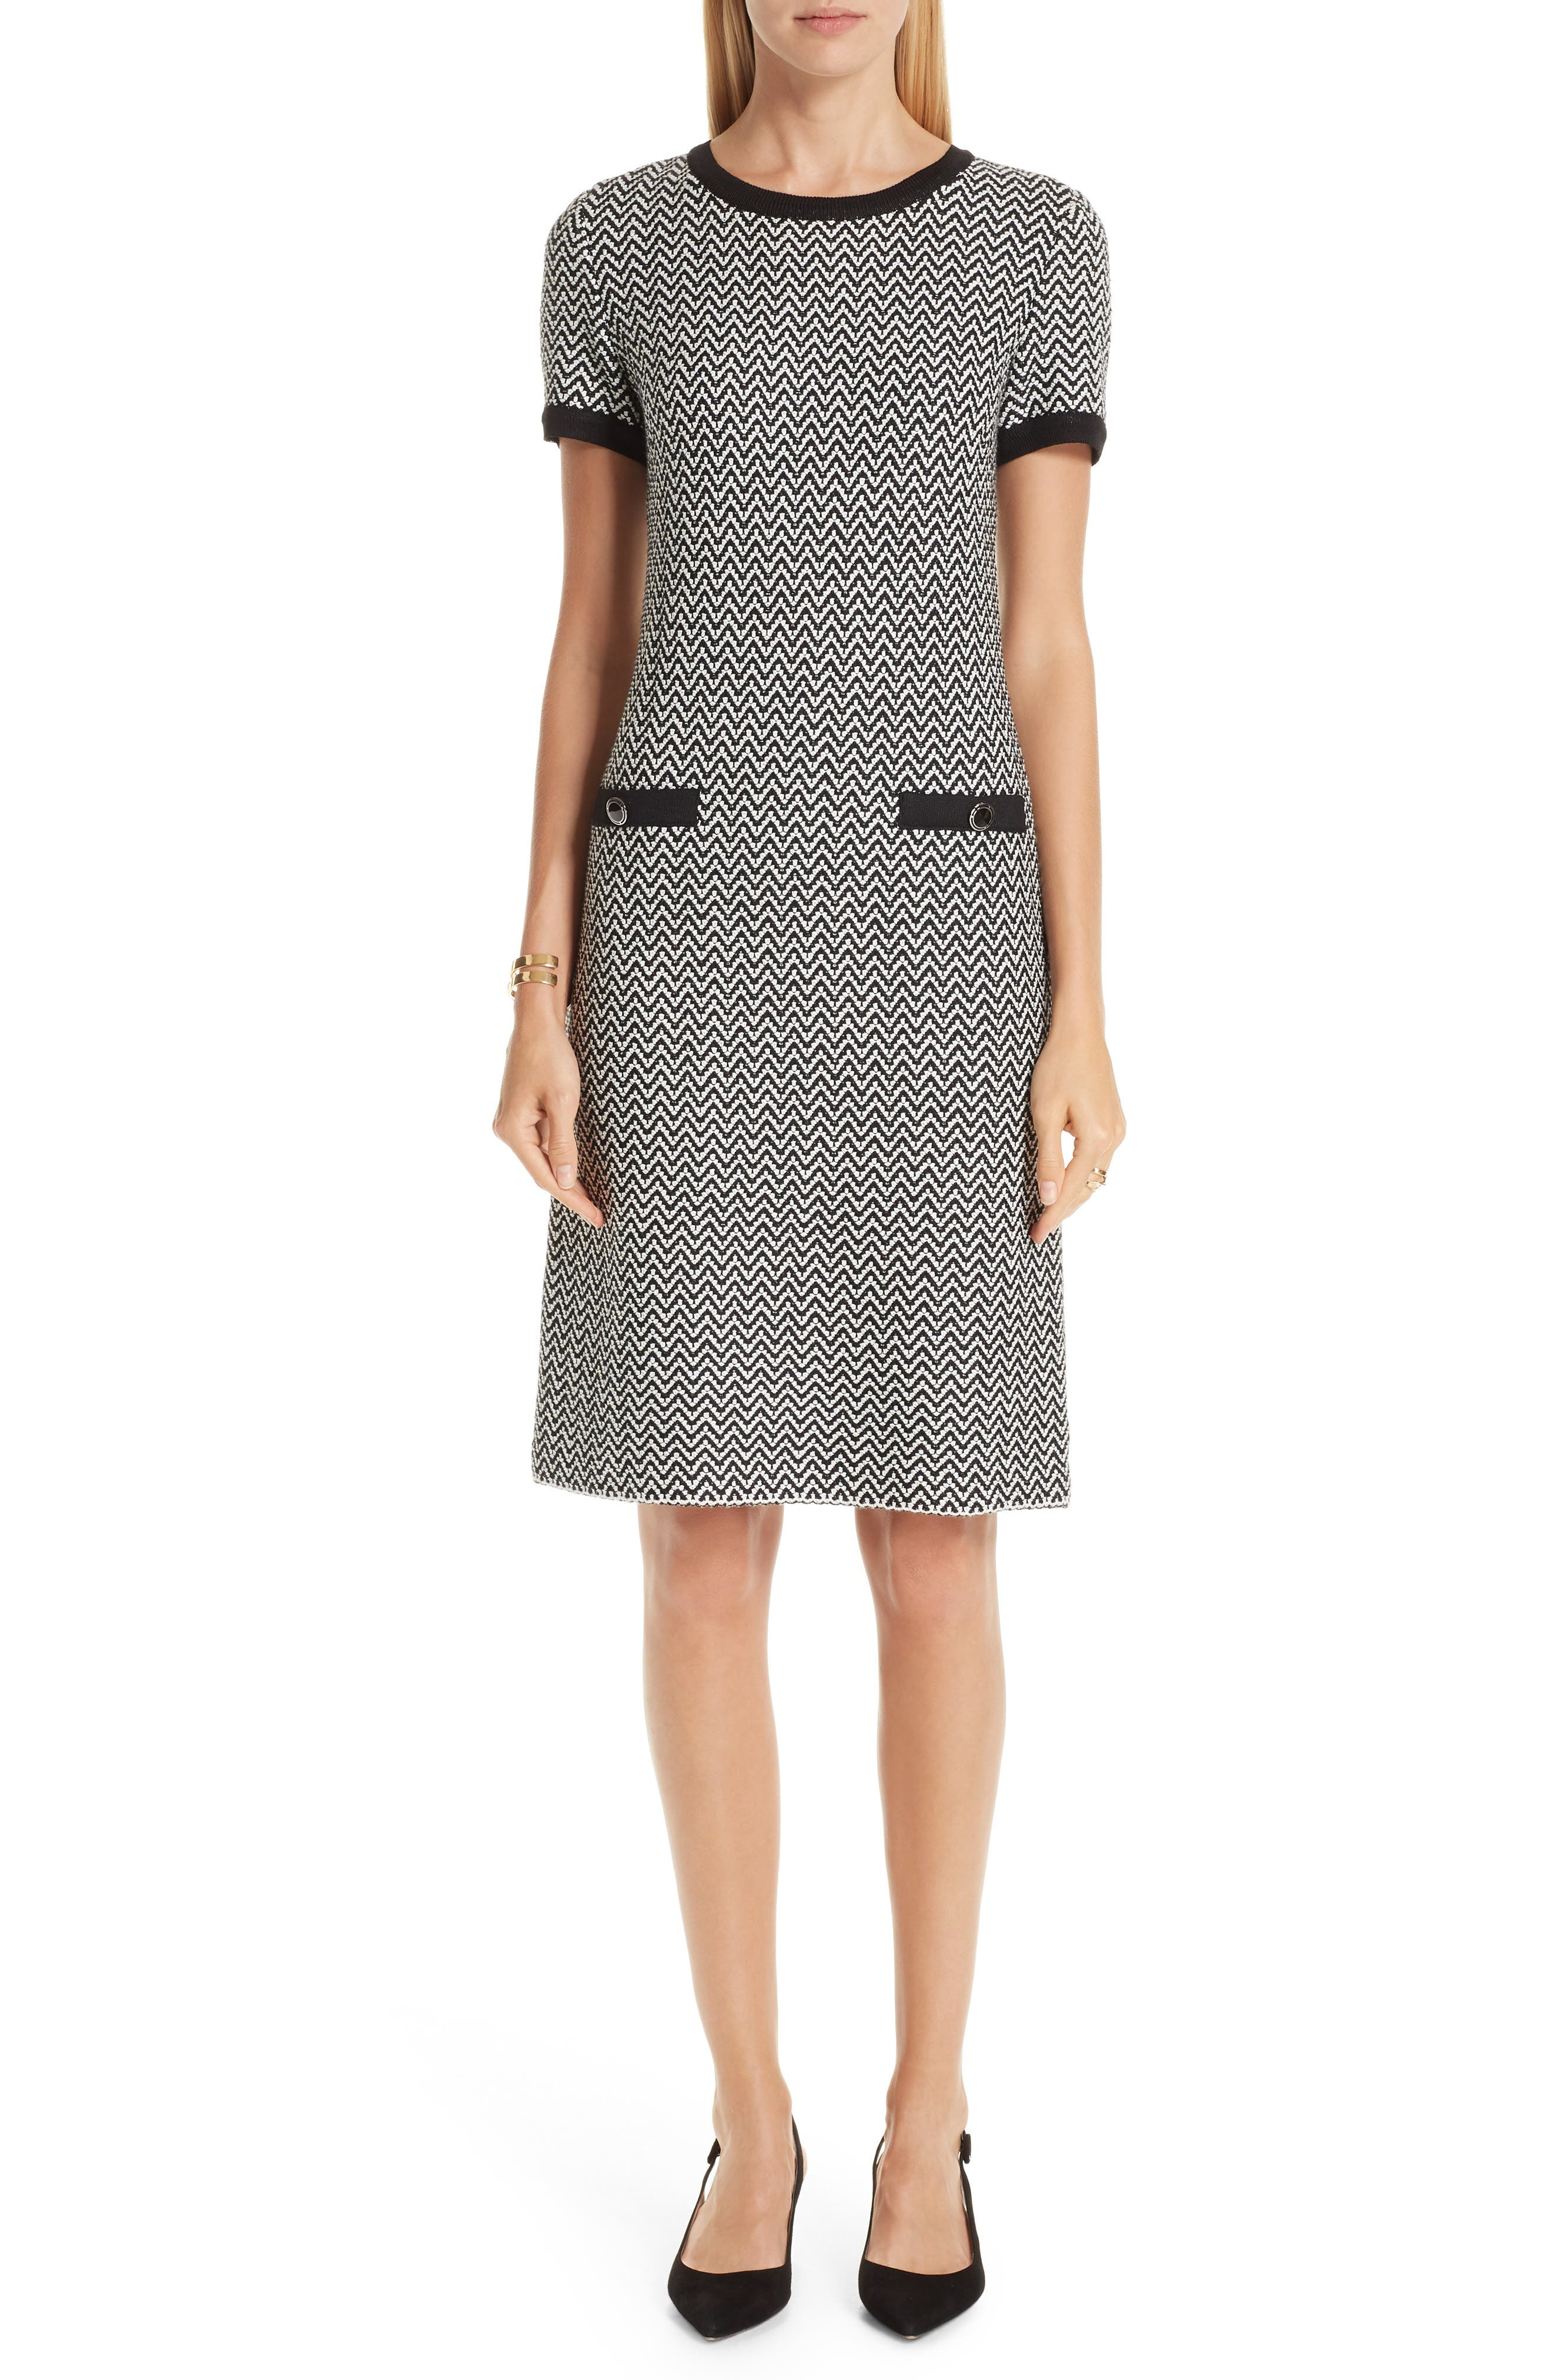 ST. JOHN COLLECTION, Mod Herringbone Knit Dress, Main thumbnail 1, color, CAVIAR/ CREAM